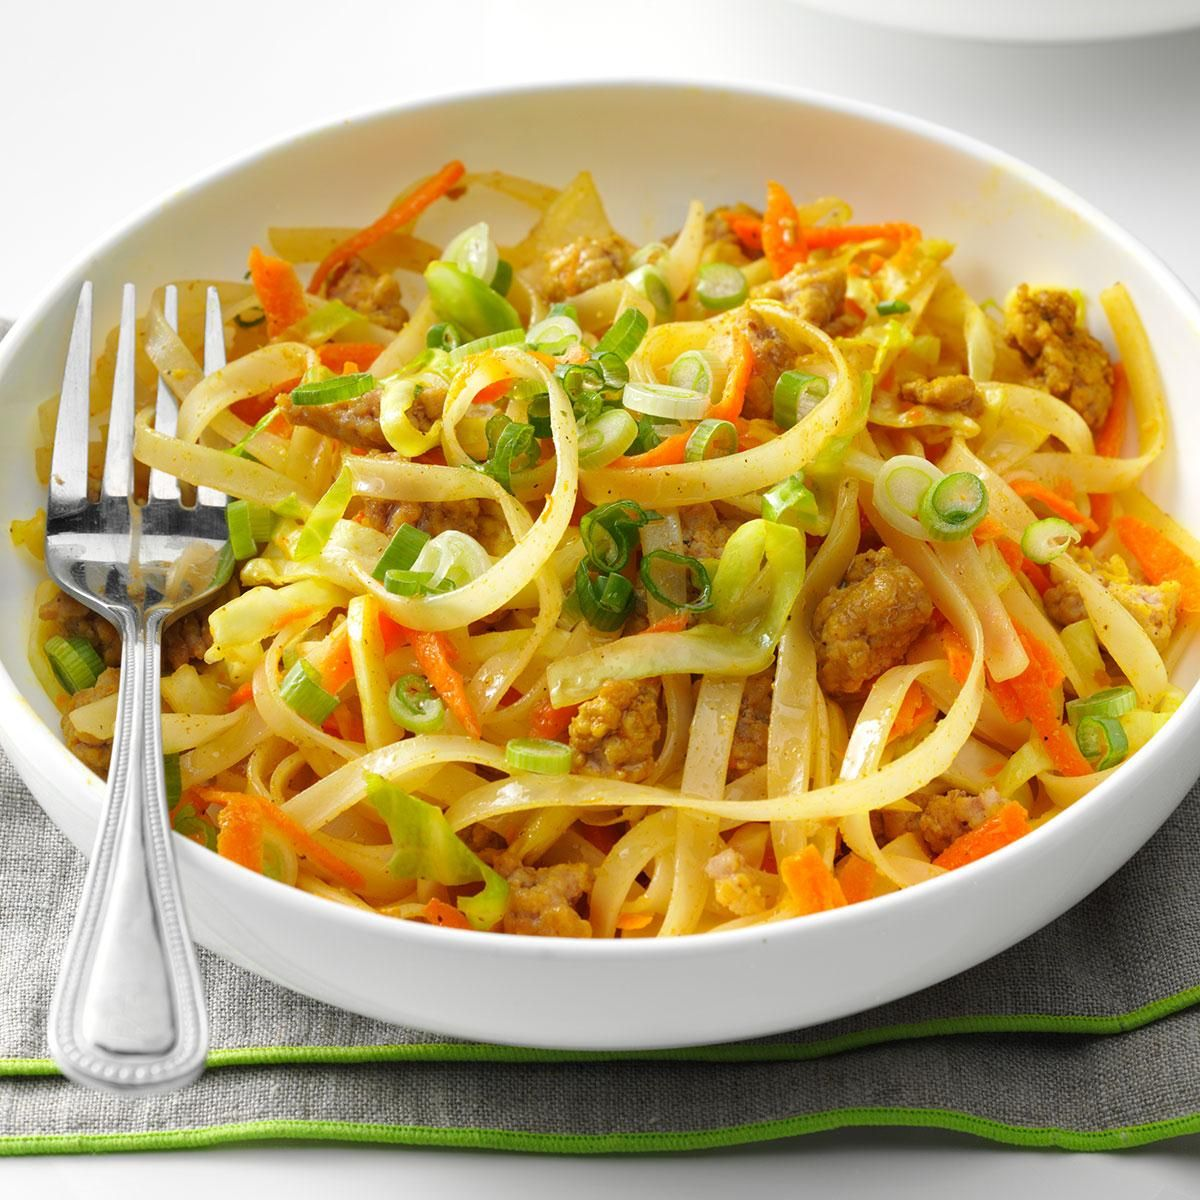 Egg Roll Noodle Bowl Recipe -We love Asian egg rolls, but they can be challenging to make. Simplify everything with this deconstructed version made on the stovetop. —Courtney Stultz, Weir, Kansas